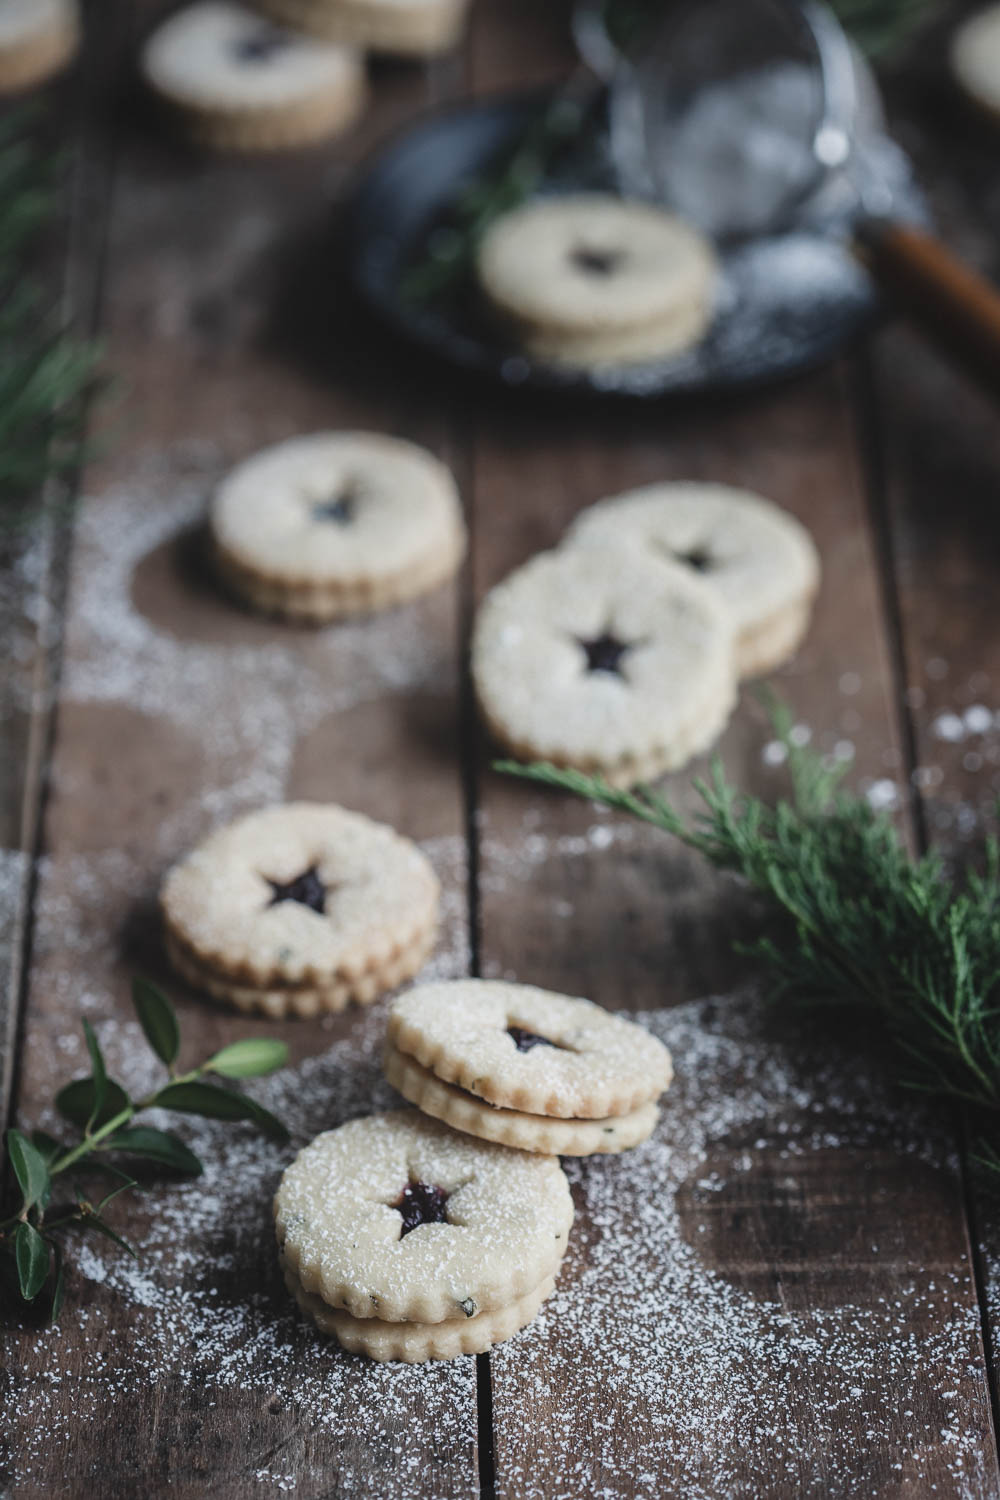 Rosemary shortbread Linzer cookies with blueberry preserves, lightly dusted with powdered sugar